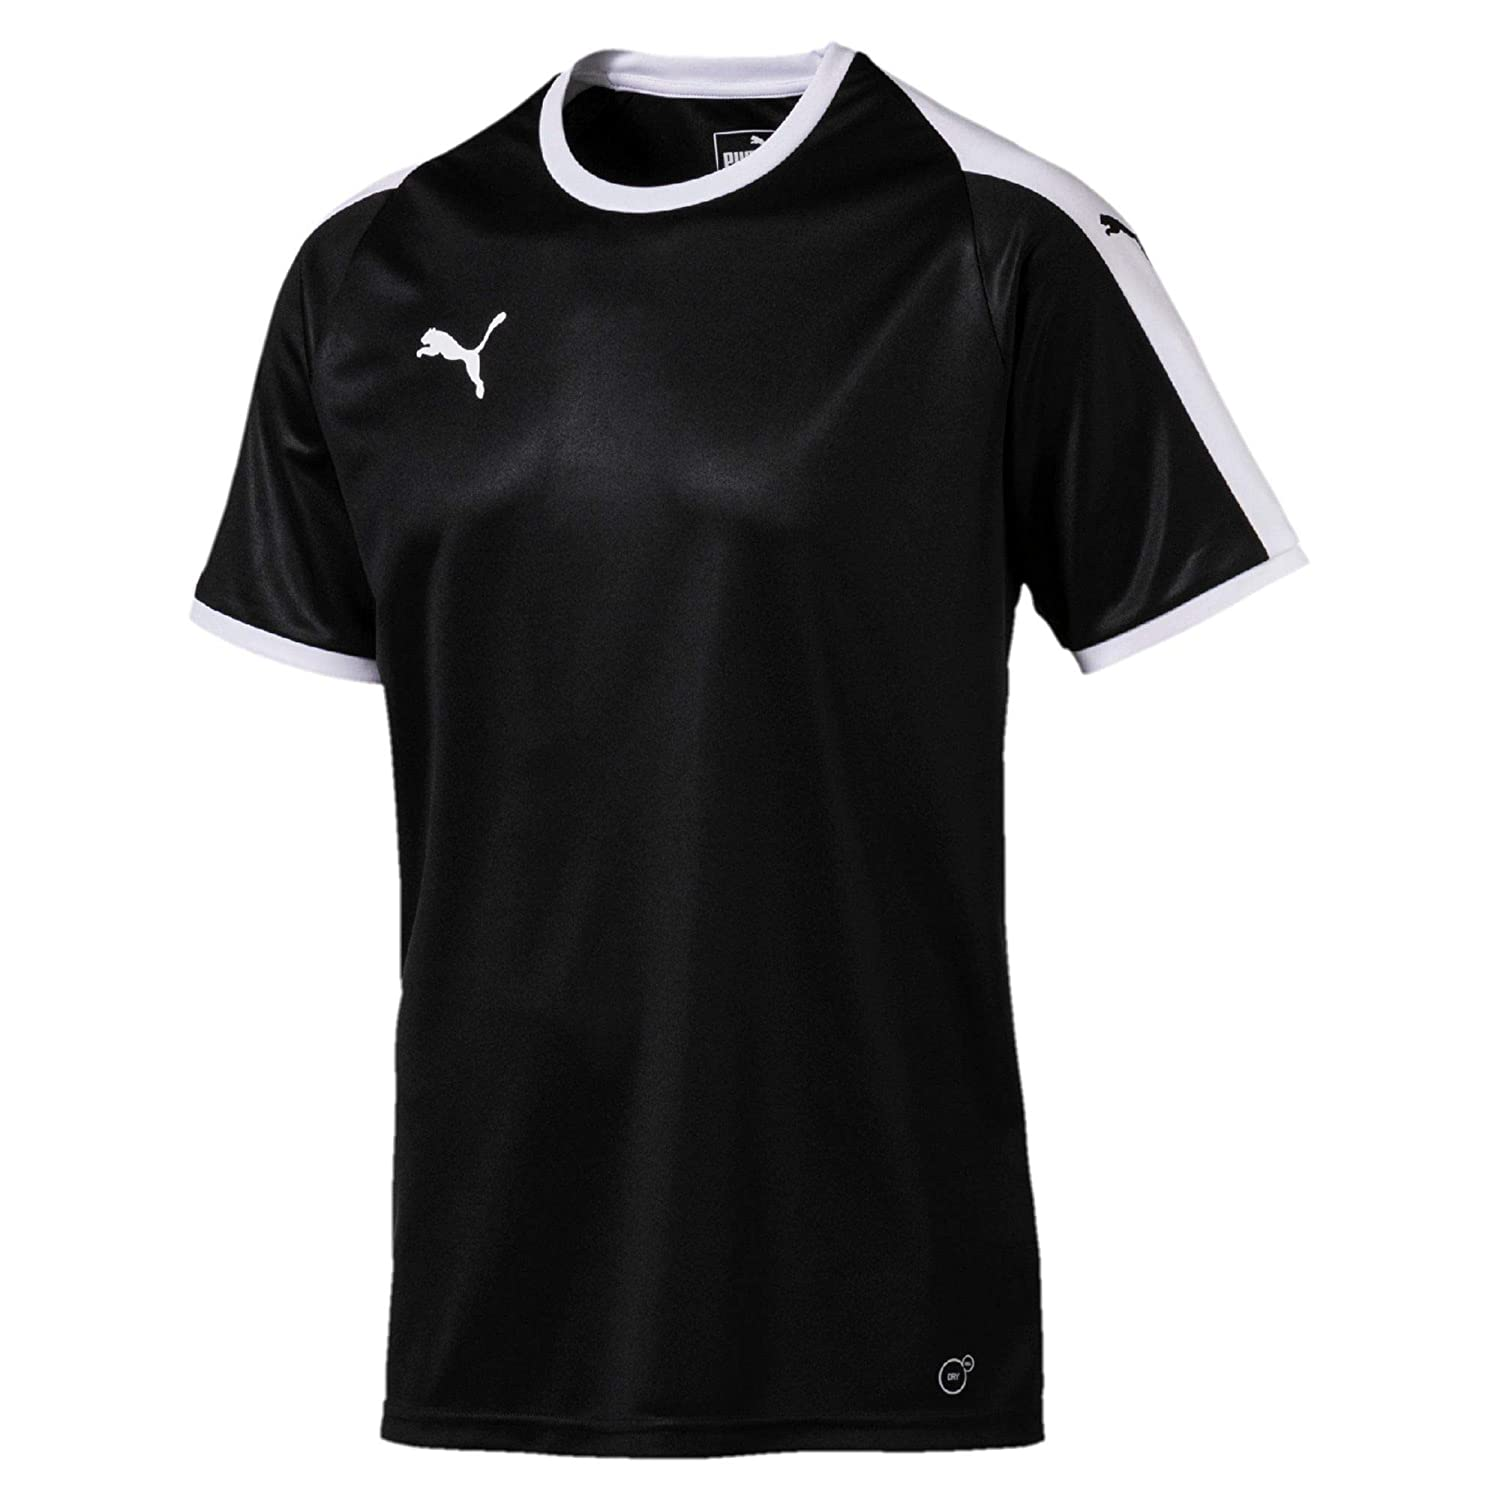 Liga ukClothing Men's Jersey T ShirtAmazon Puma co Pn0kOw8